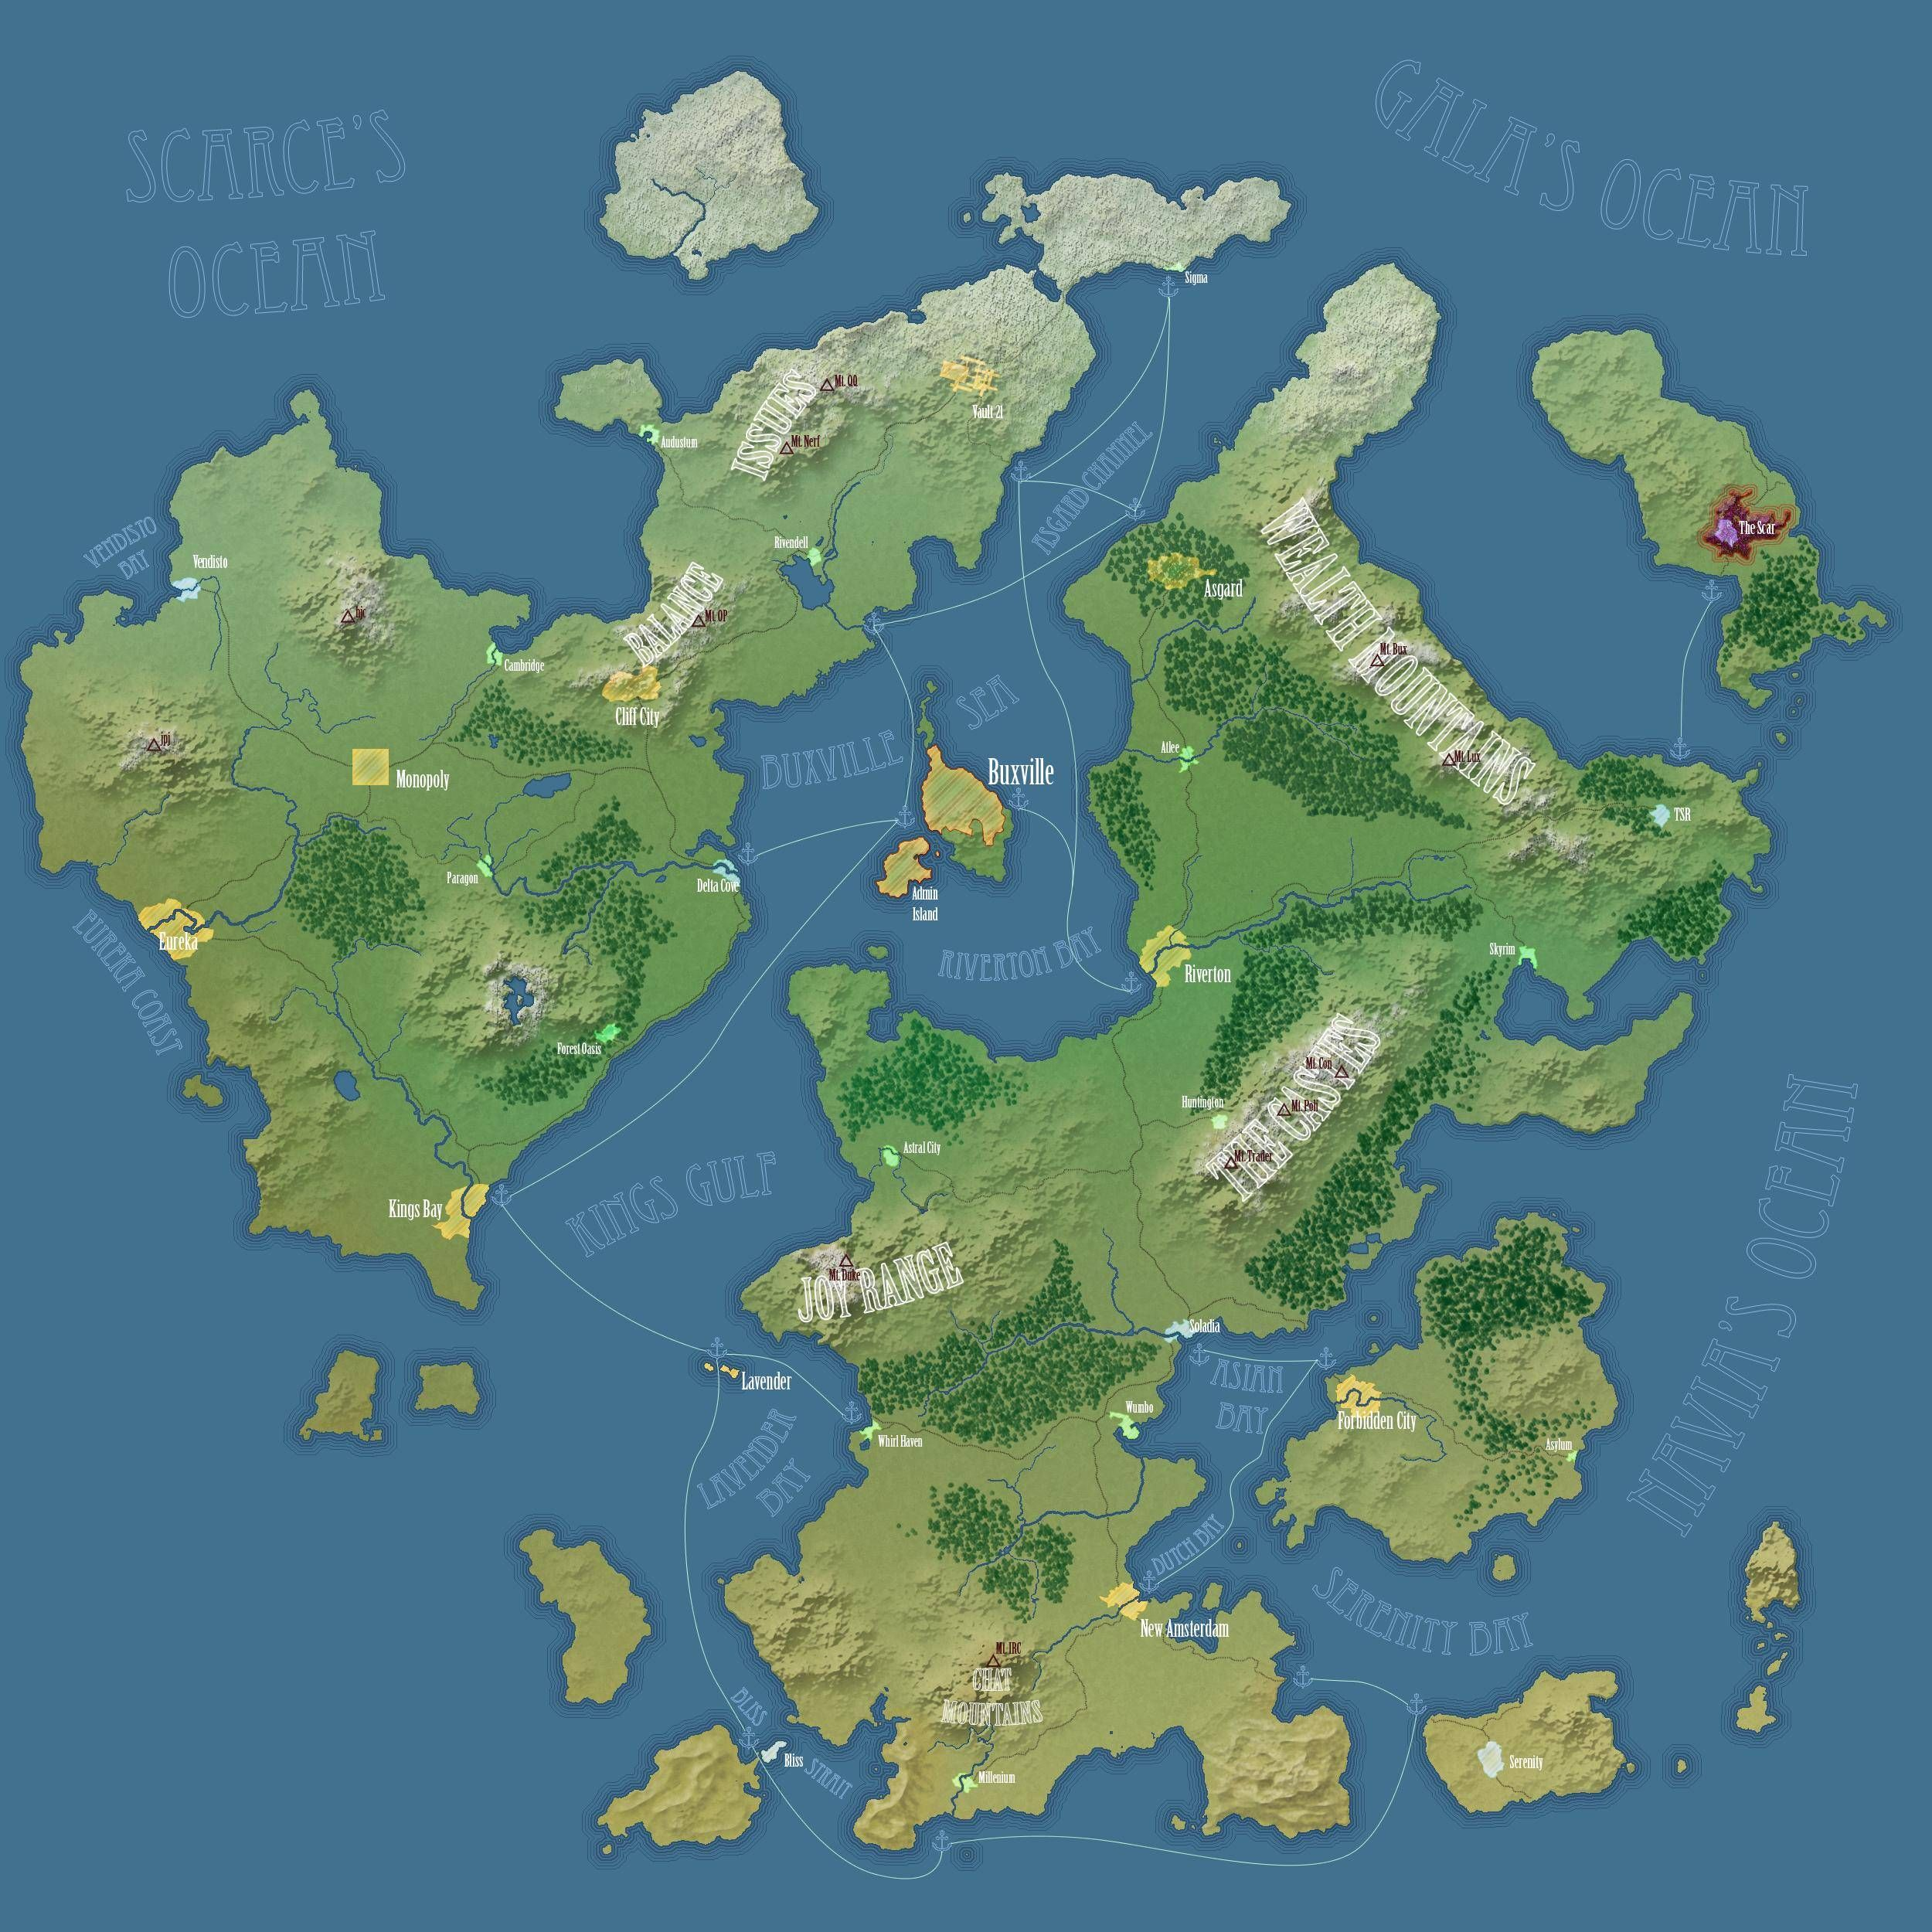 fantasy map - Google Search | Maps, Dungeons, and Floorplans ... on map of world map, places world map, windows world map, youtube world map, skype world map, facebook world map, bing world map, green world map, google map pin, amazon world map, google analytics world map, mapquest world map, evernote world map, earth map, santa tracker world map, iphone world map, google data center locations map, camera world map, calendar world map, linkedin world map,